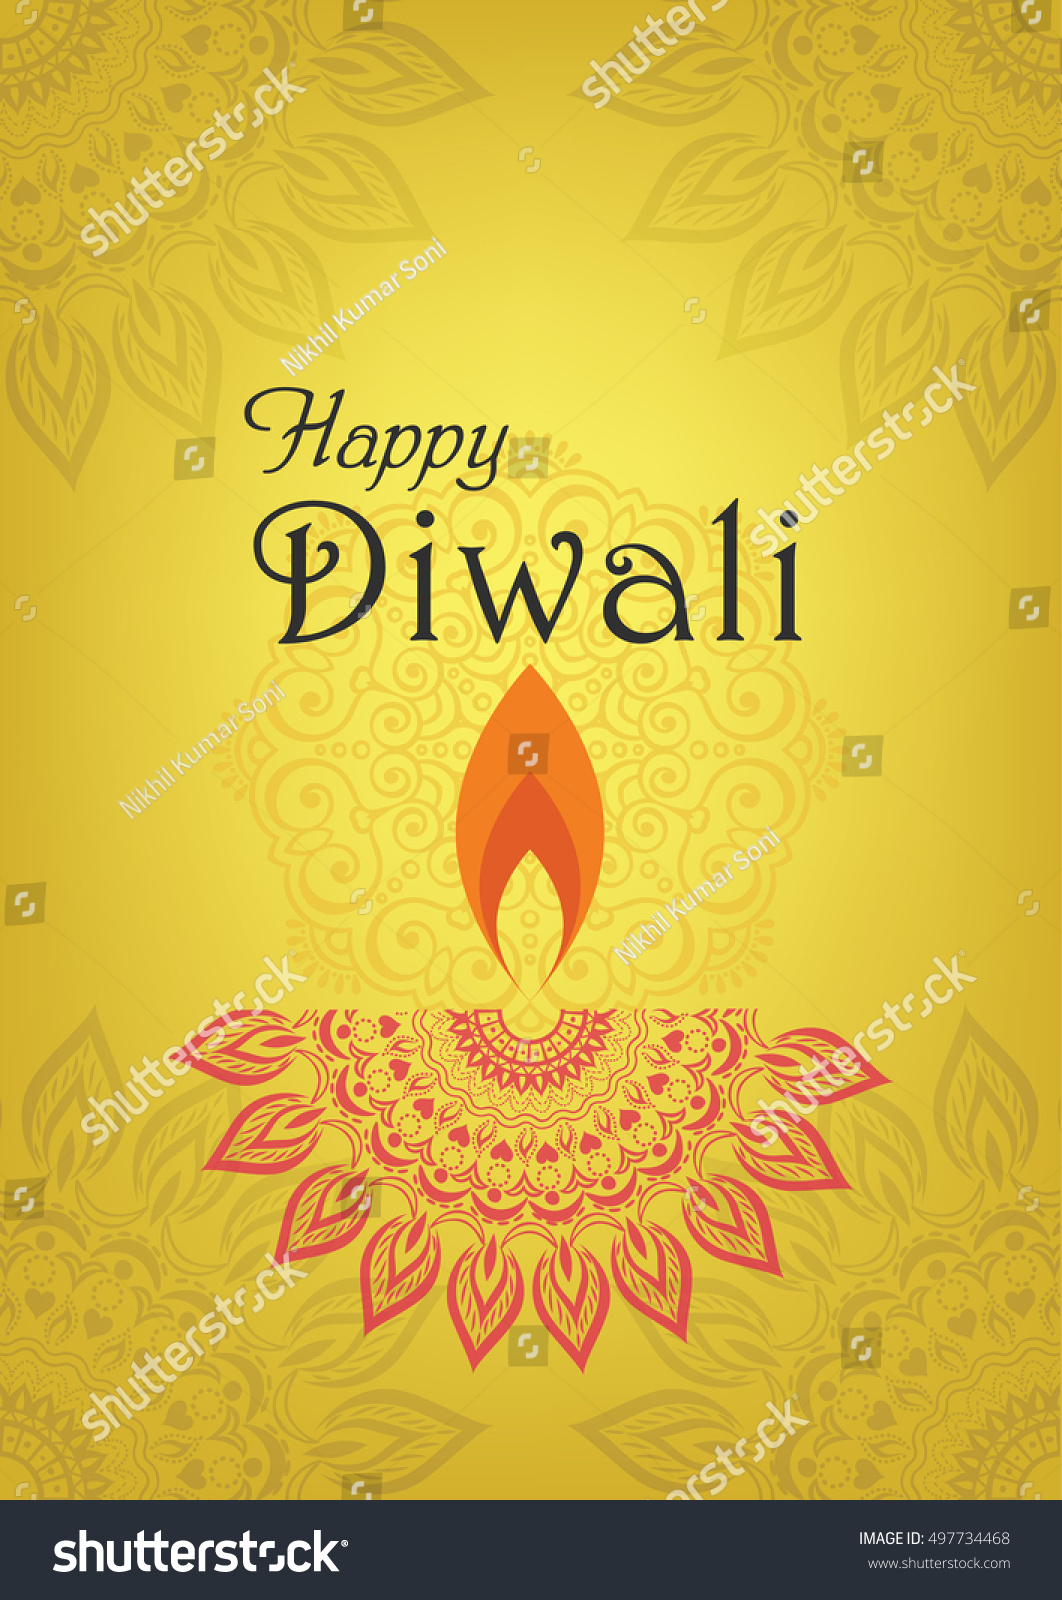 Diwali greeting design for Diwali festival celebration in India